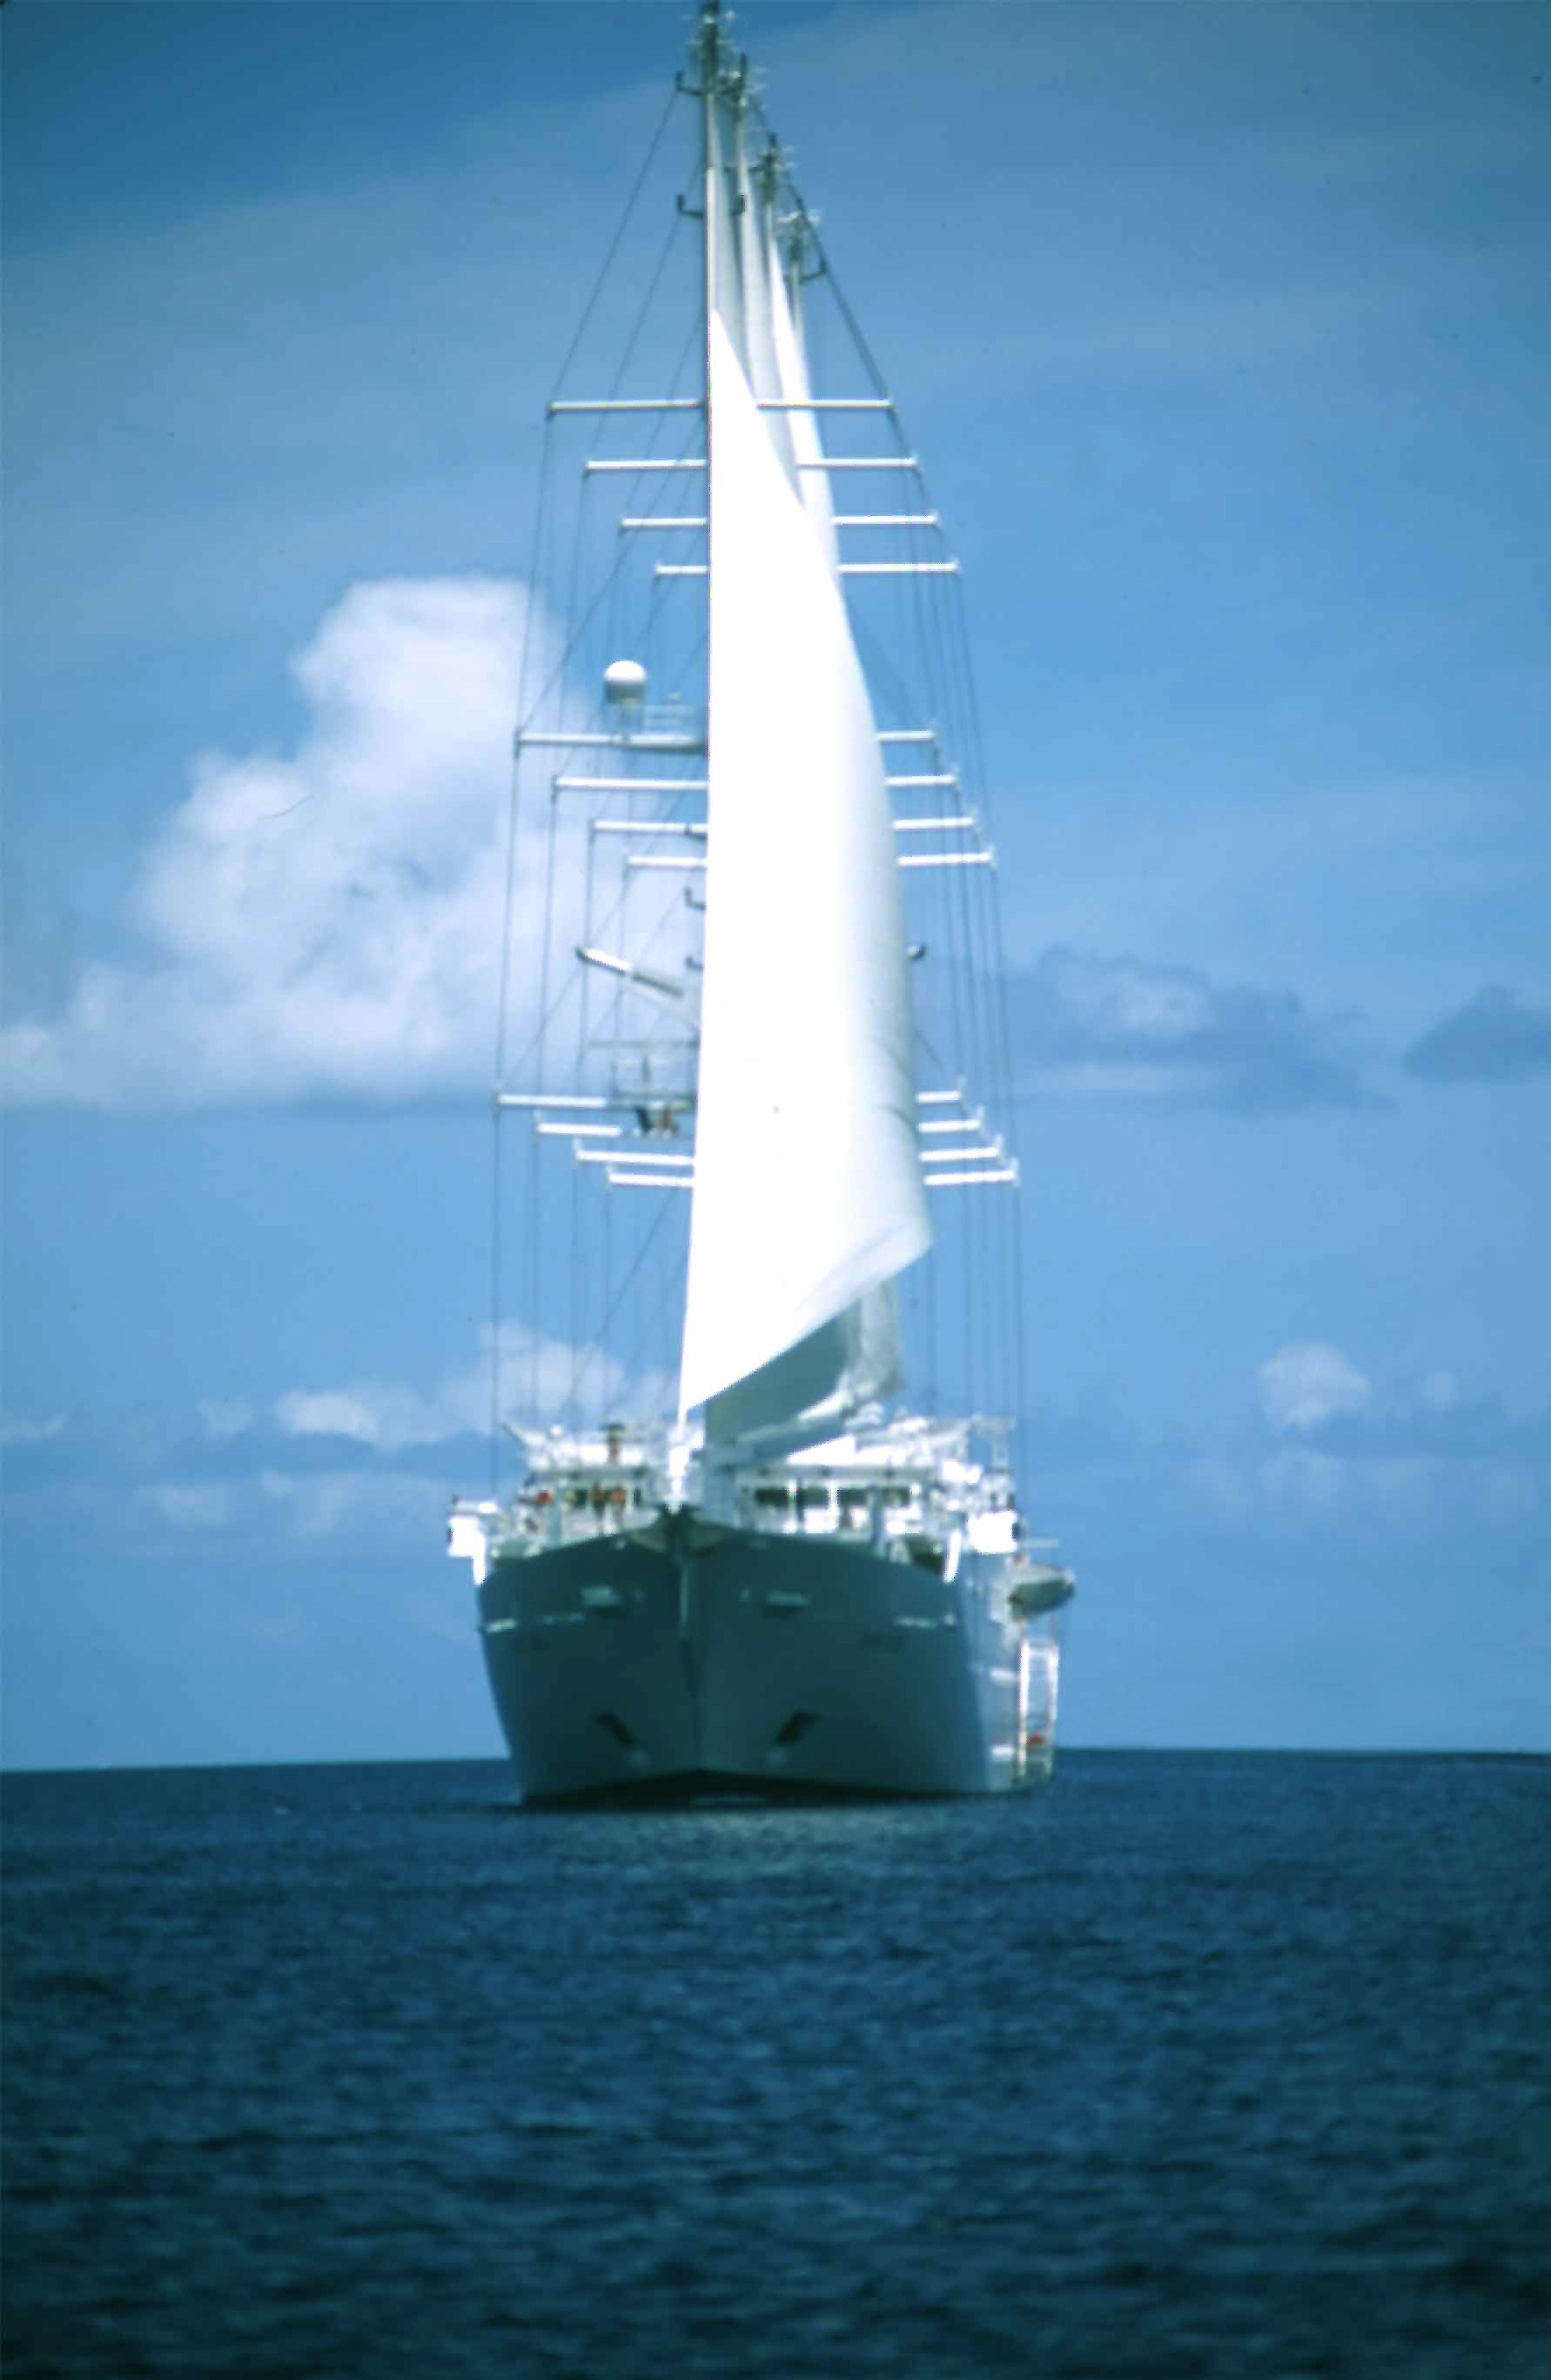 Kimball-Hall_Windstar-ship2hue.jpg